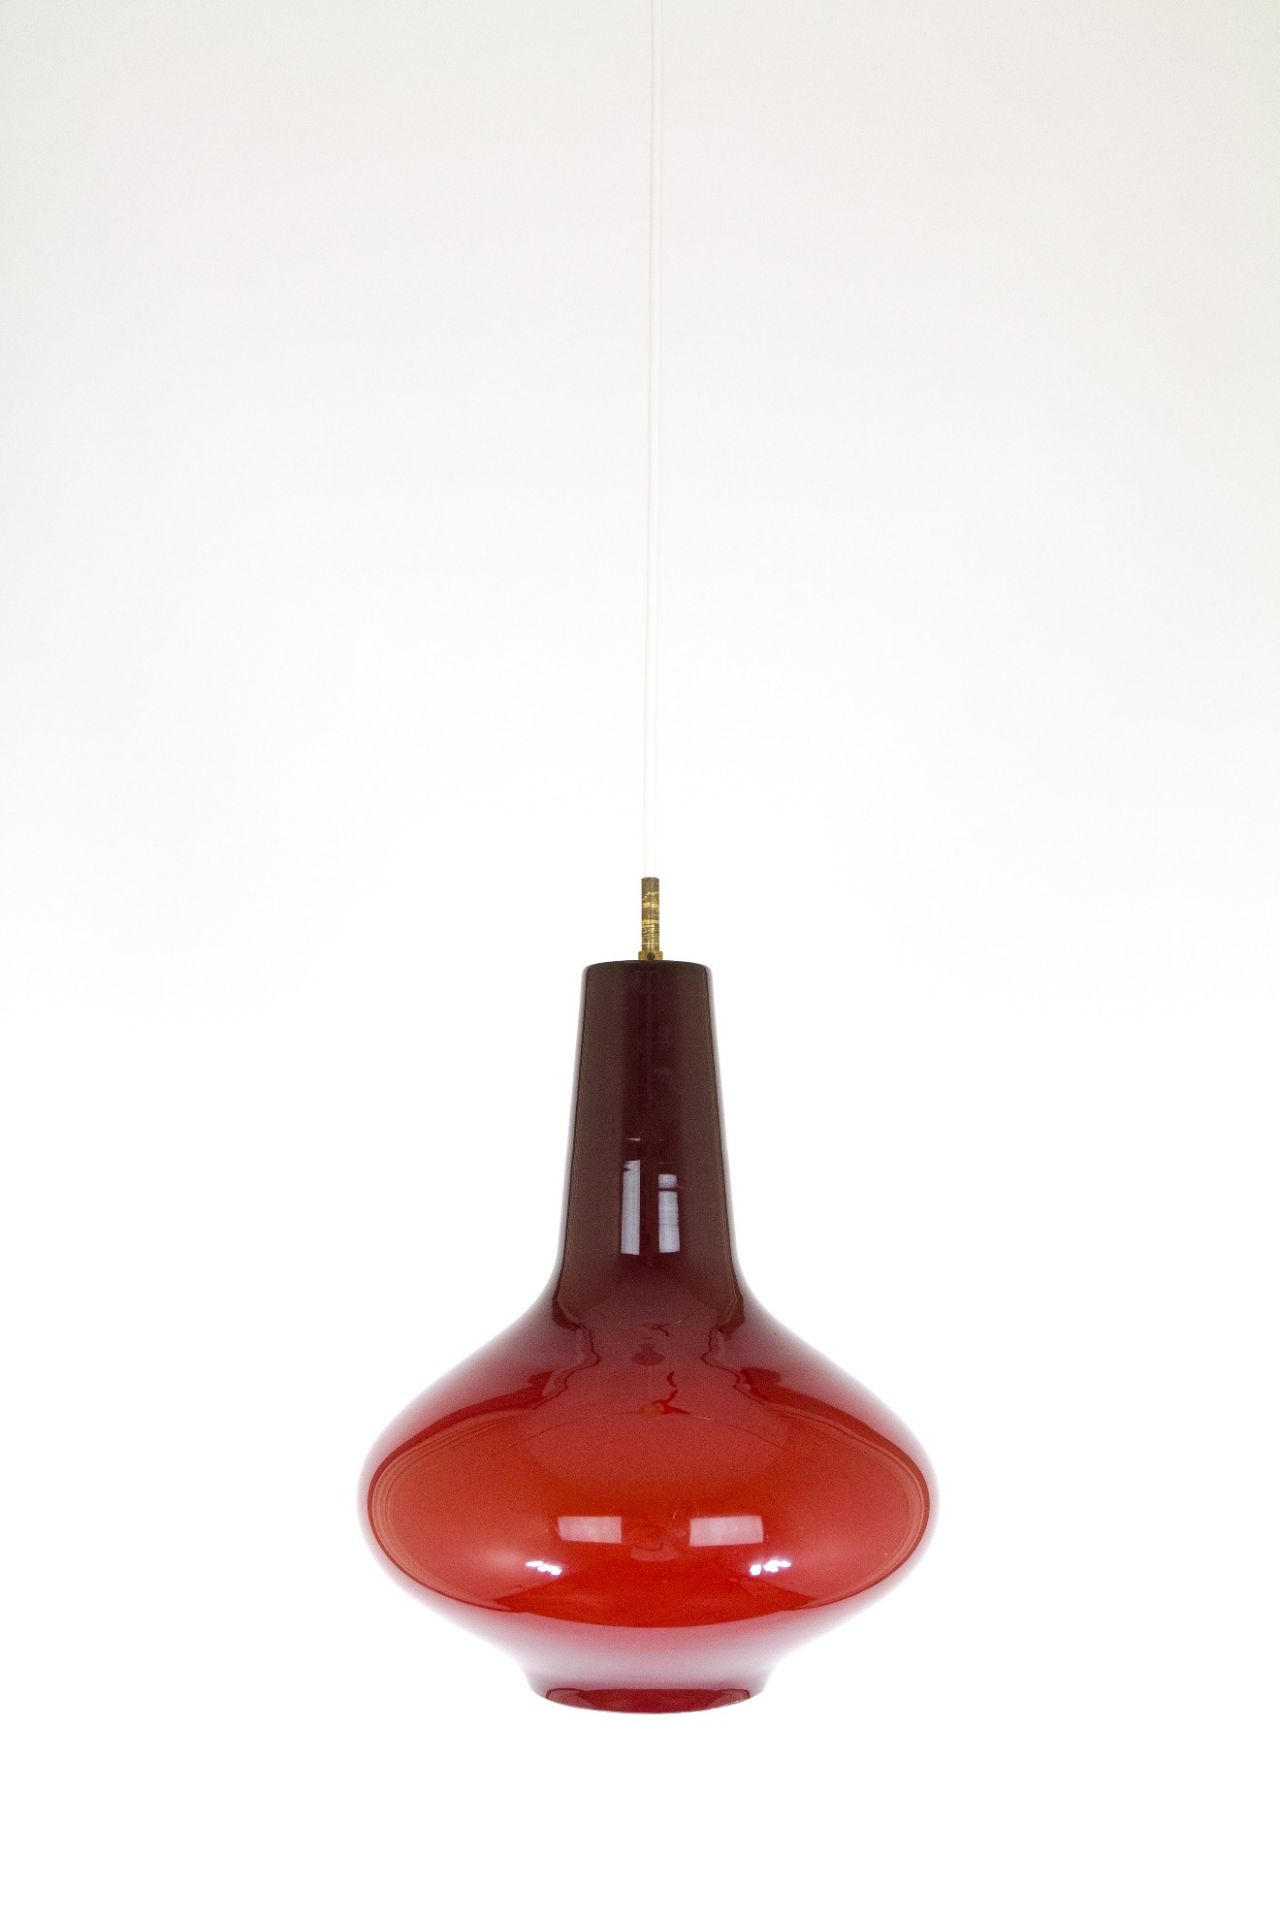 Hand-blown Murano glass pendant by Massimo Vignelli for Venini, 1950s